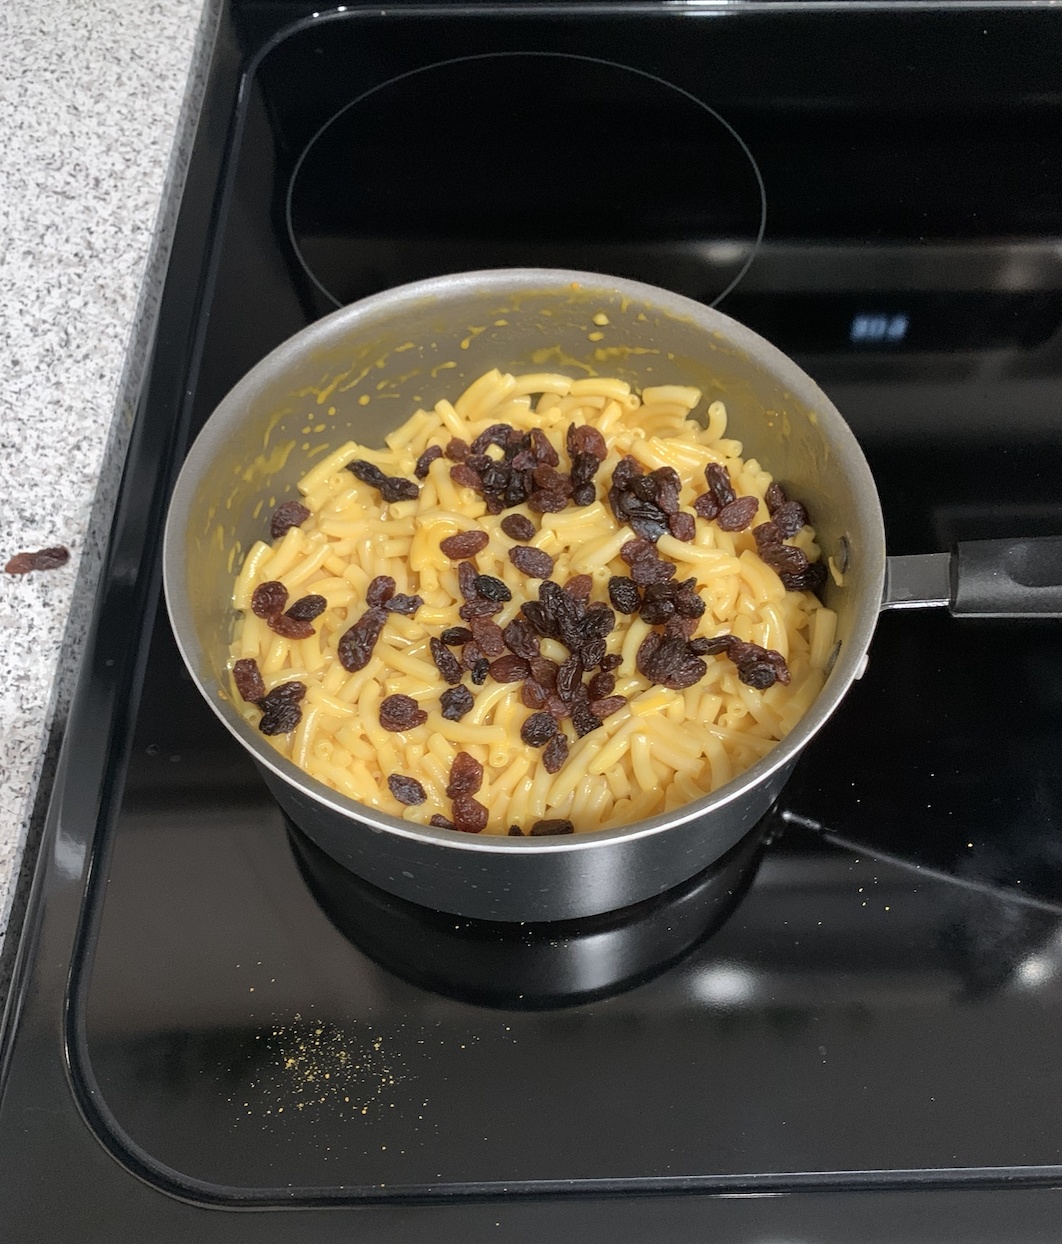 Questionable pot of macaroni and cheese topped with raisins